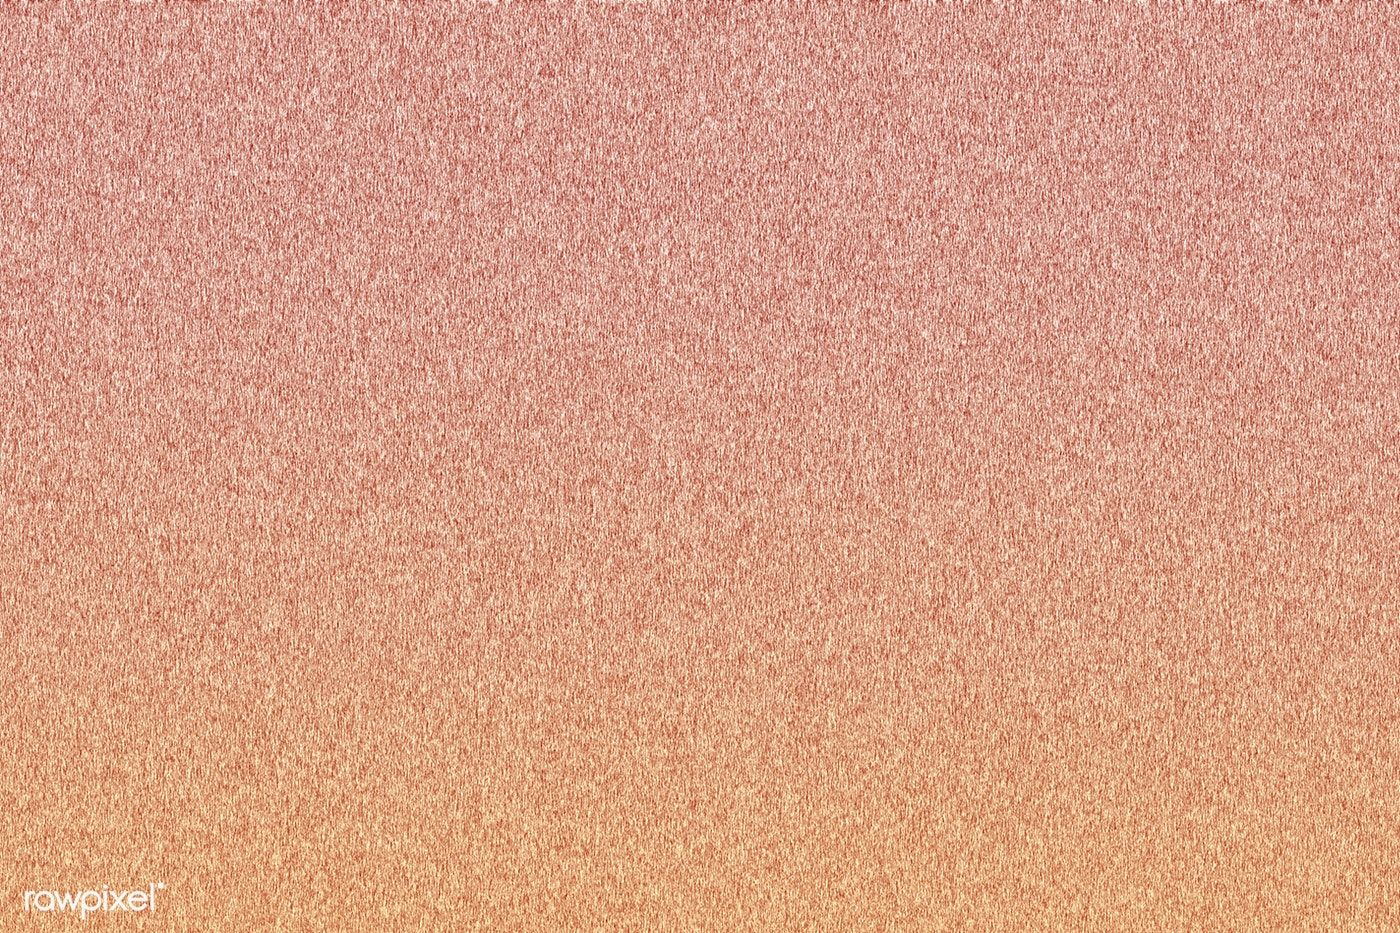 Pink Smooth Textile Textured Background Free Image By Rawpixel